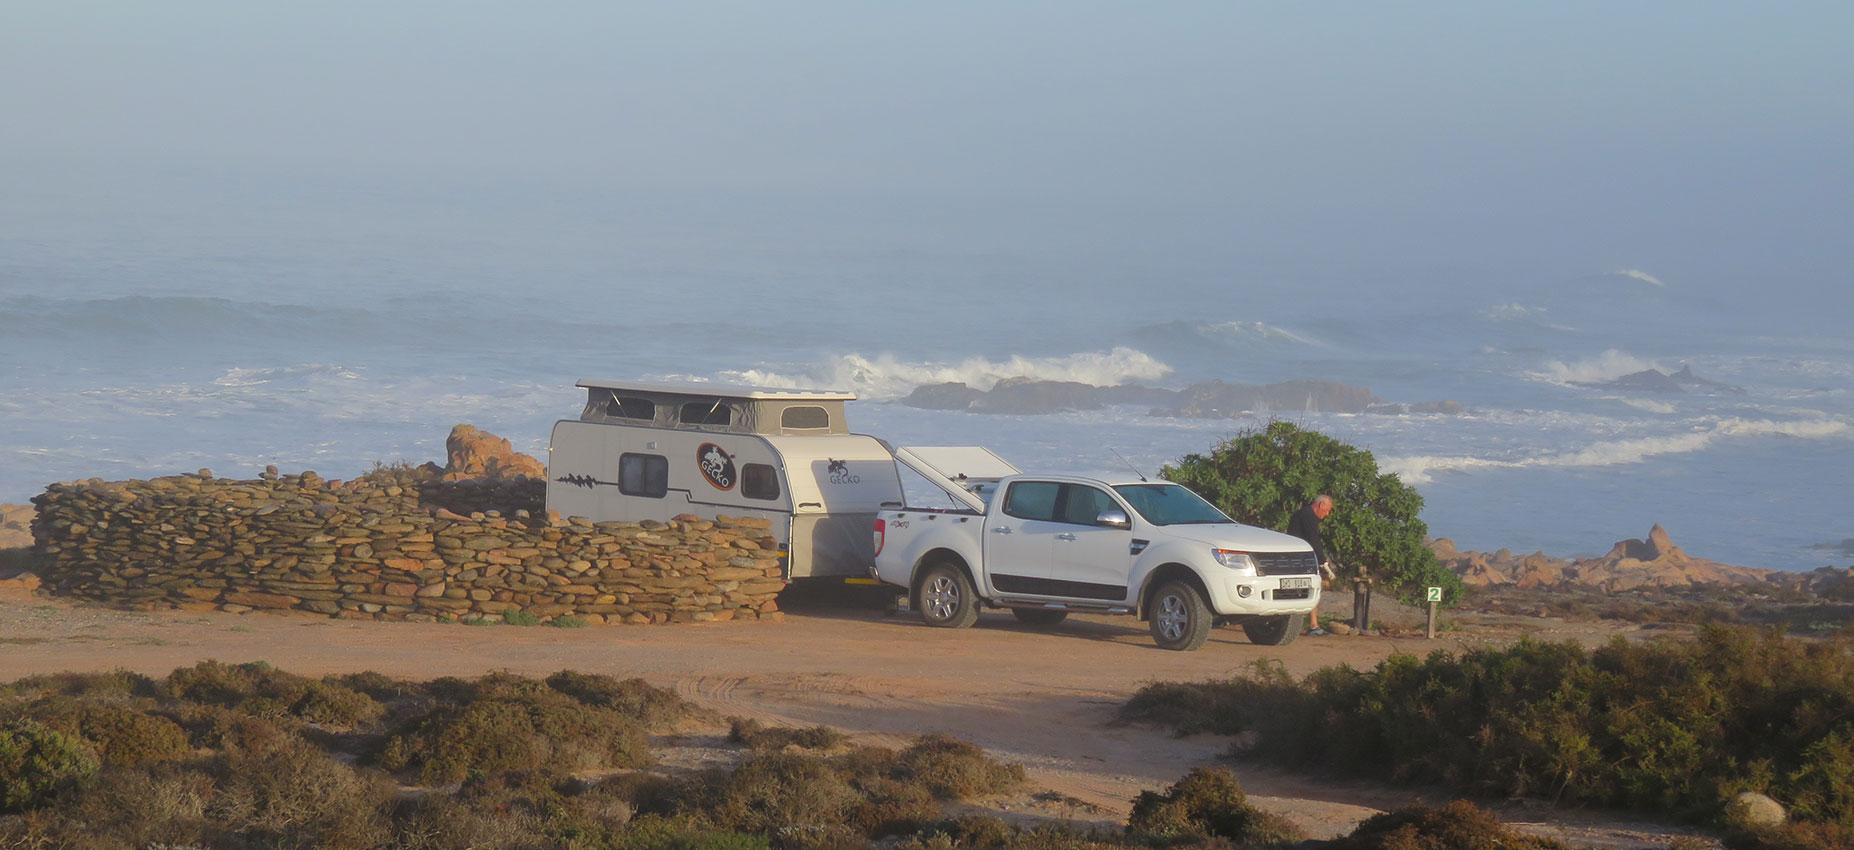 Offroad Caravan Camping at Sea